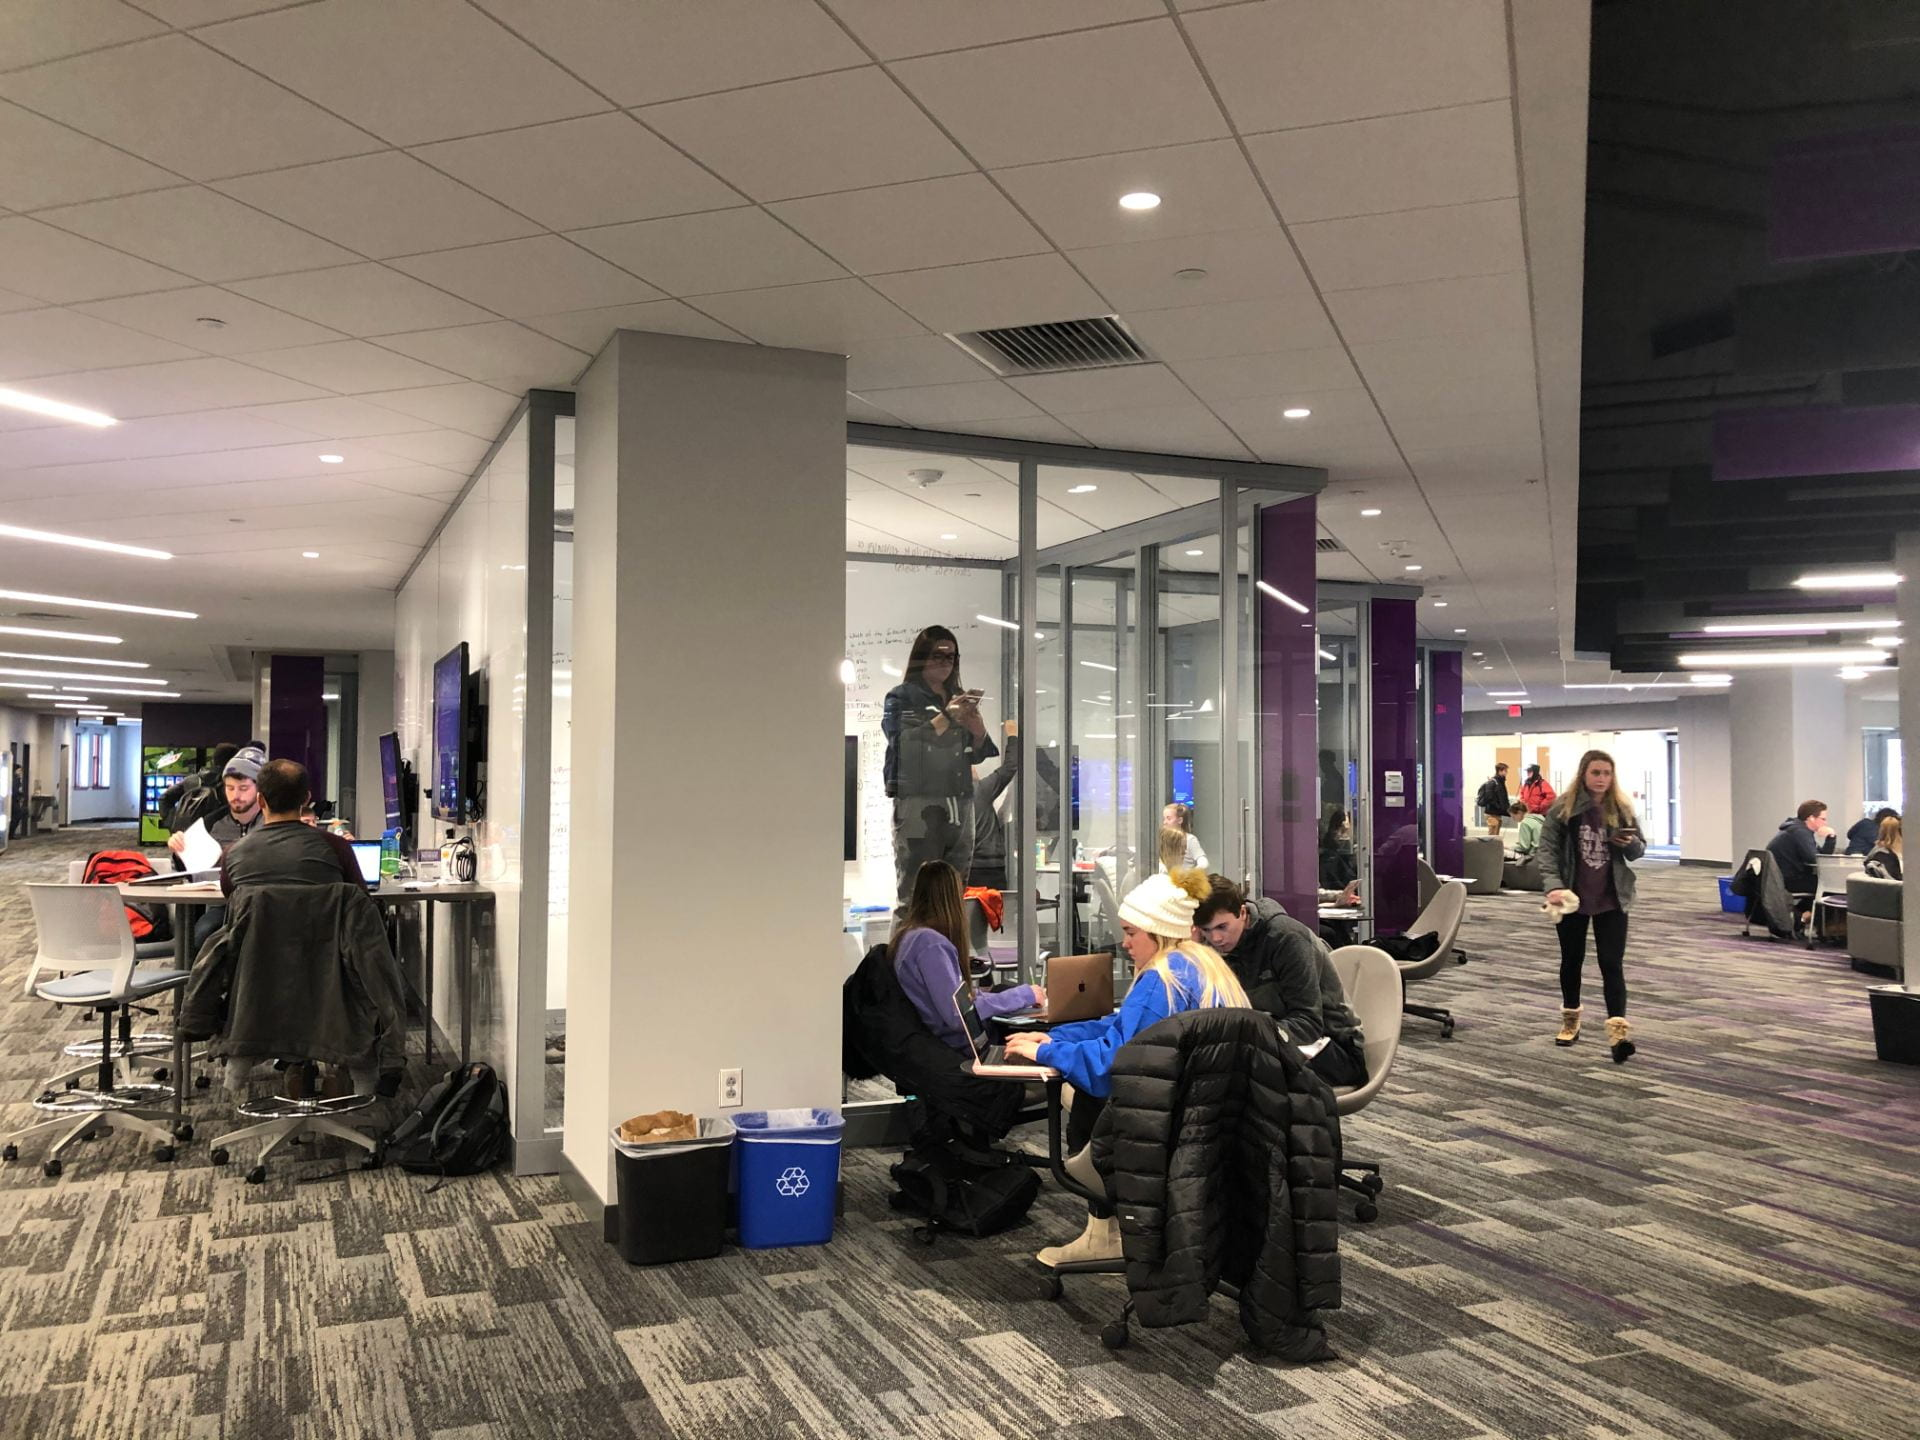 The first floor of Hale Library is packed with students studying.